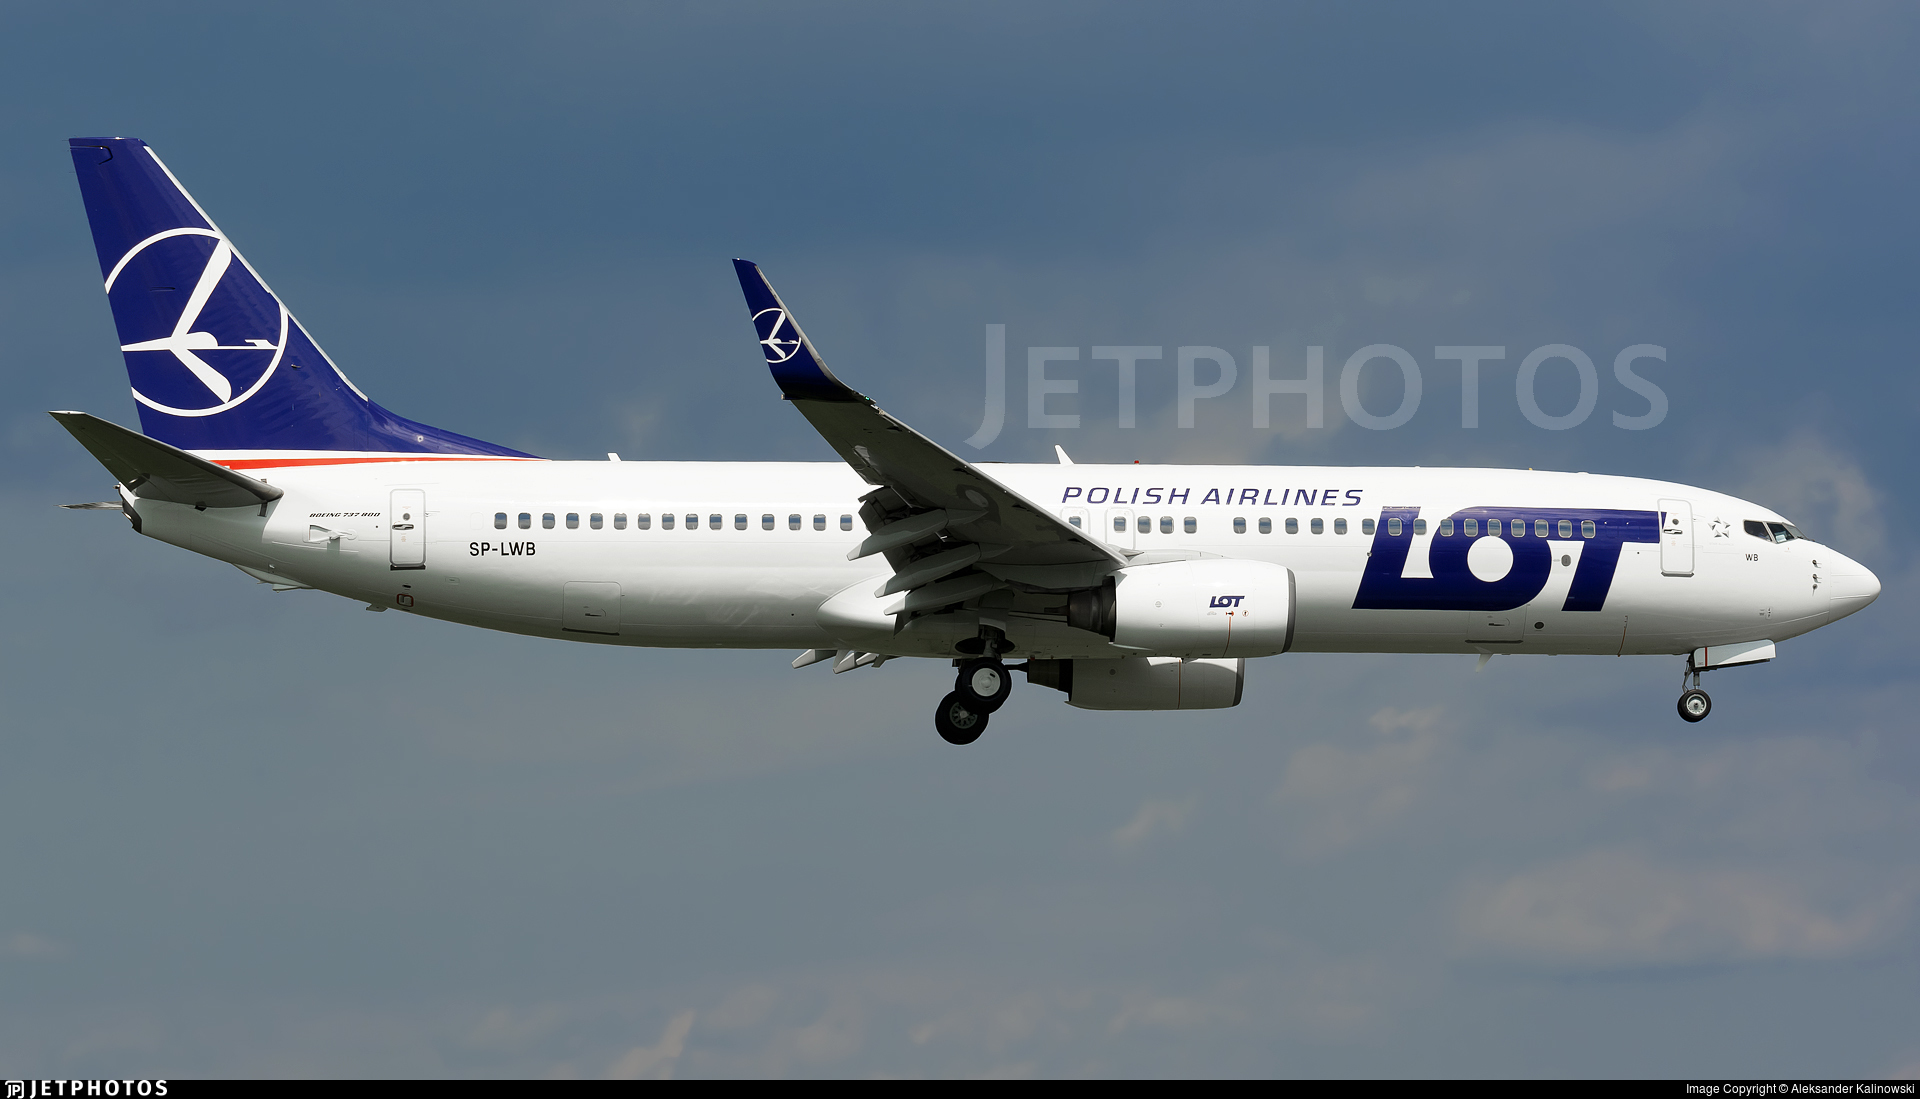 LOT Polish Airlines SA - Strategy, SWOT and Corporate Finance Report